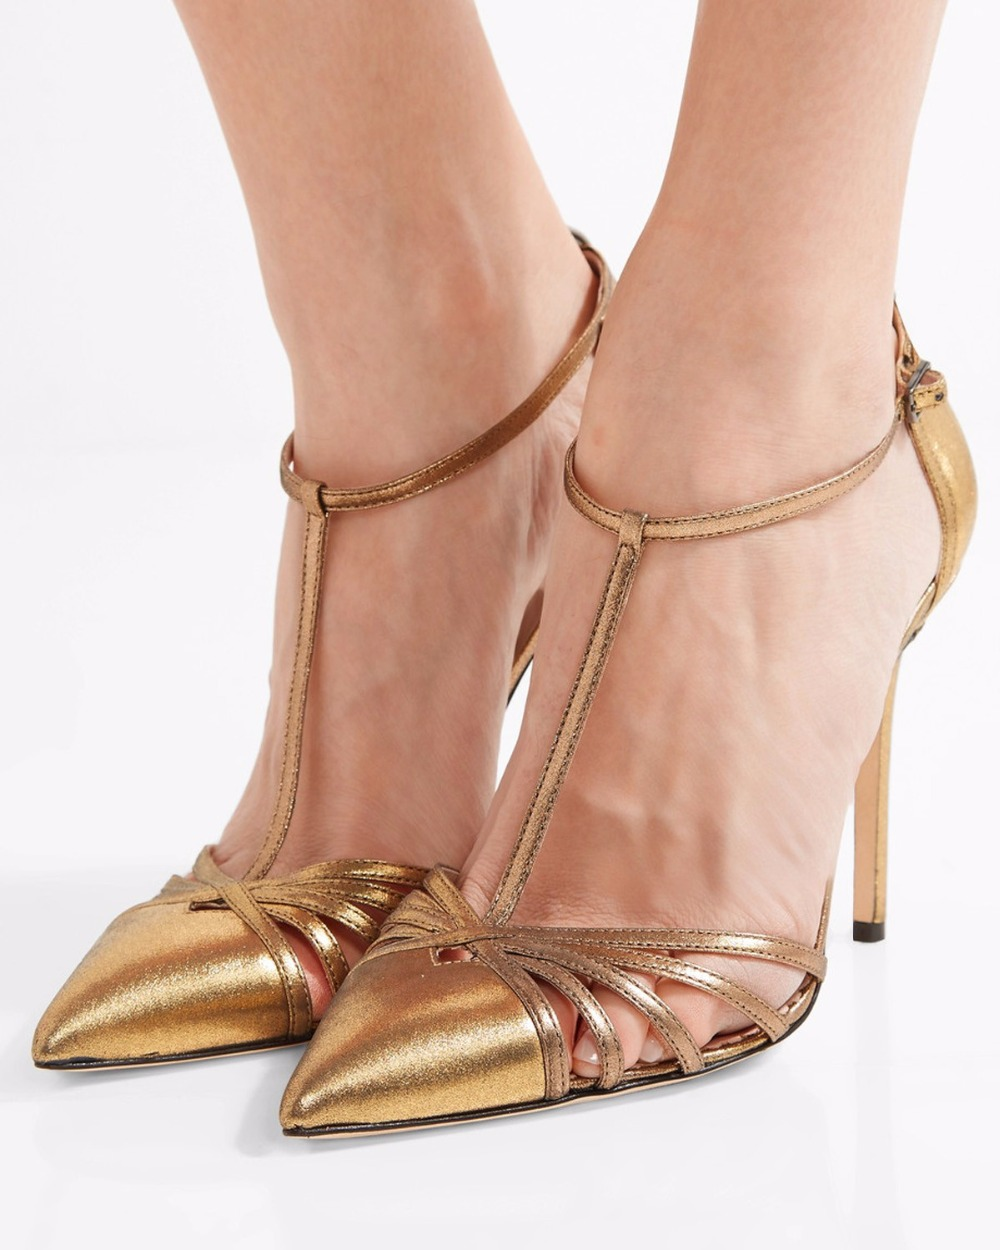 ФОТО Sexy High Heel Sandals for Women Gloden Leather Party Shoes Evening Dress High Heels Pointy Toe T strap Shoes Ladies Stilettos